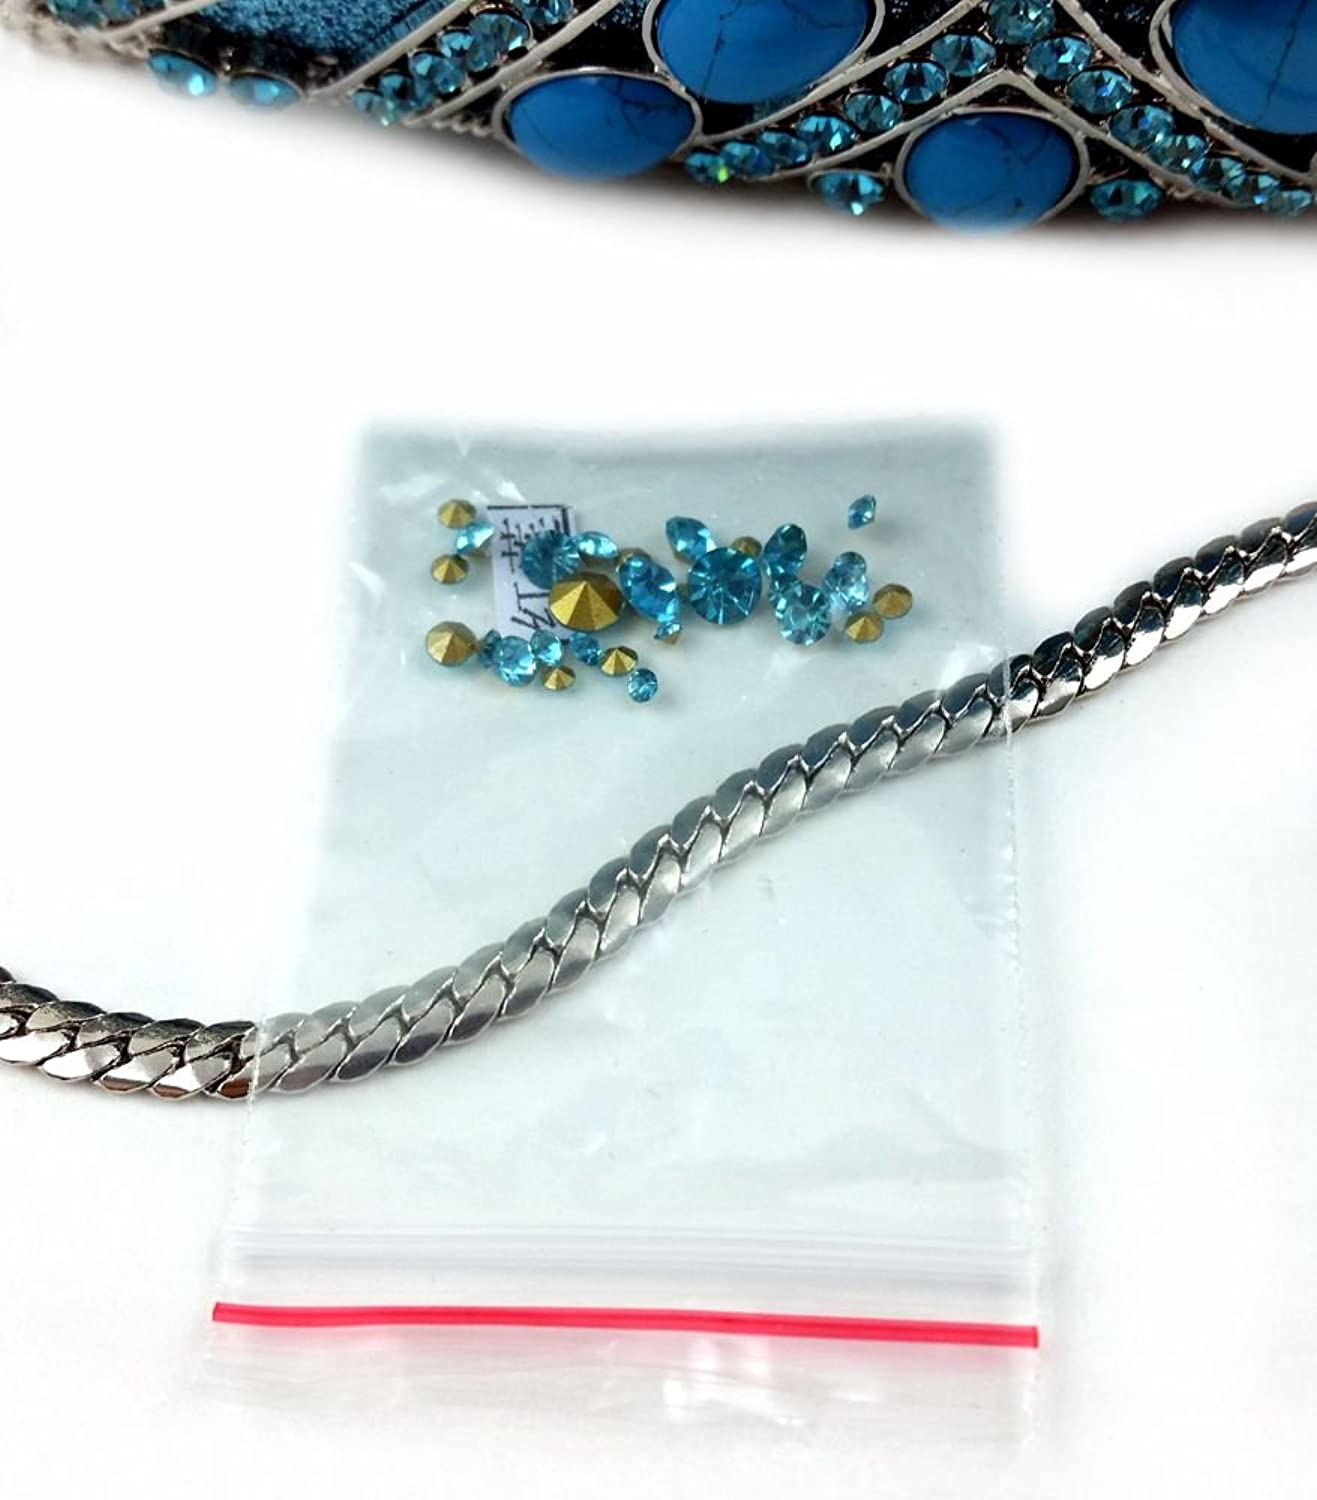 """Tikal"" Turquoise Stones & Swarovski Crystal Studded Clutch Purse, 10"" chain, Hard Case, Leather-lined."